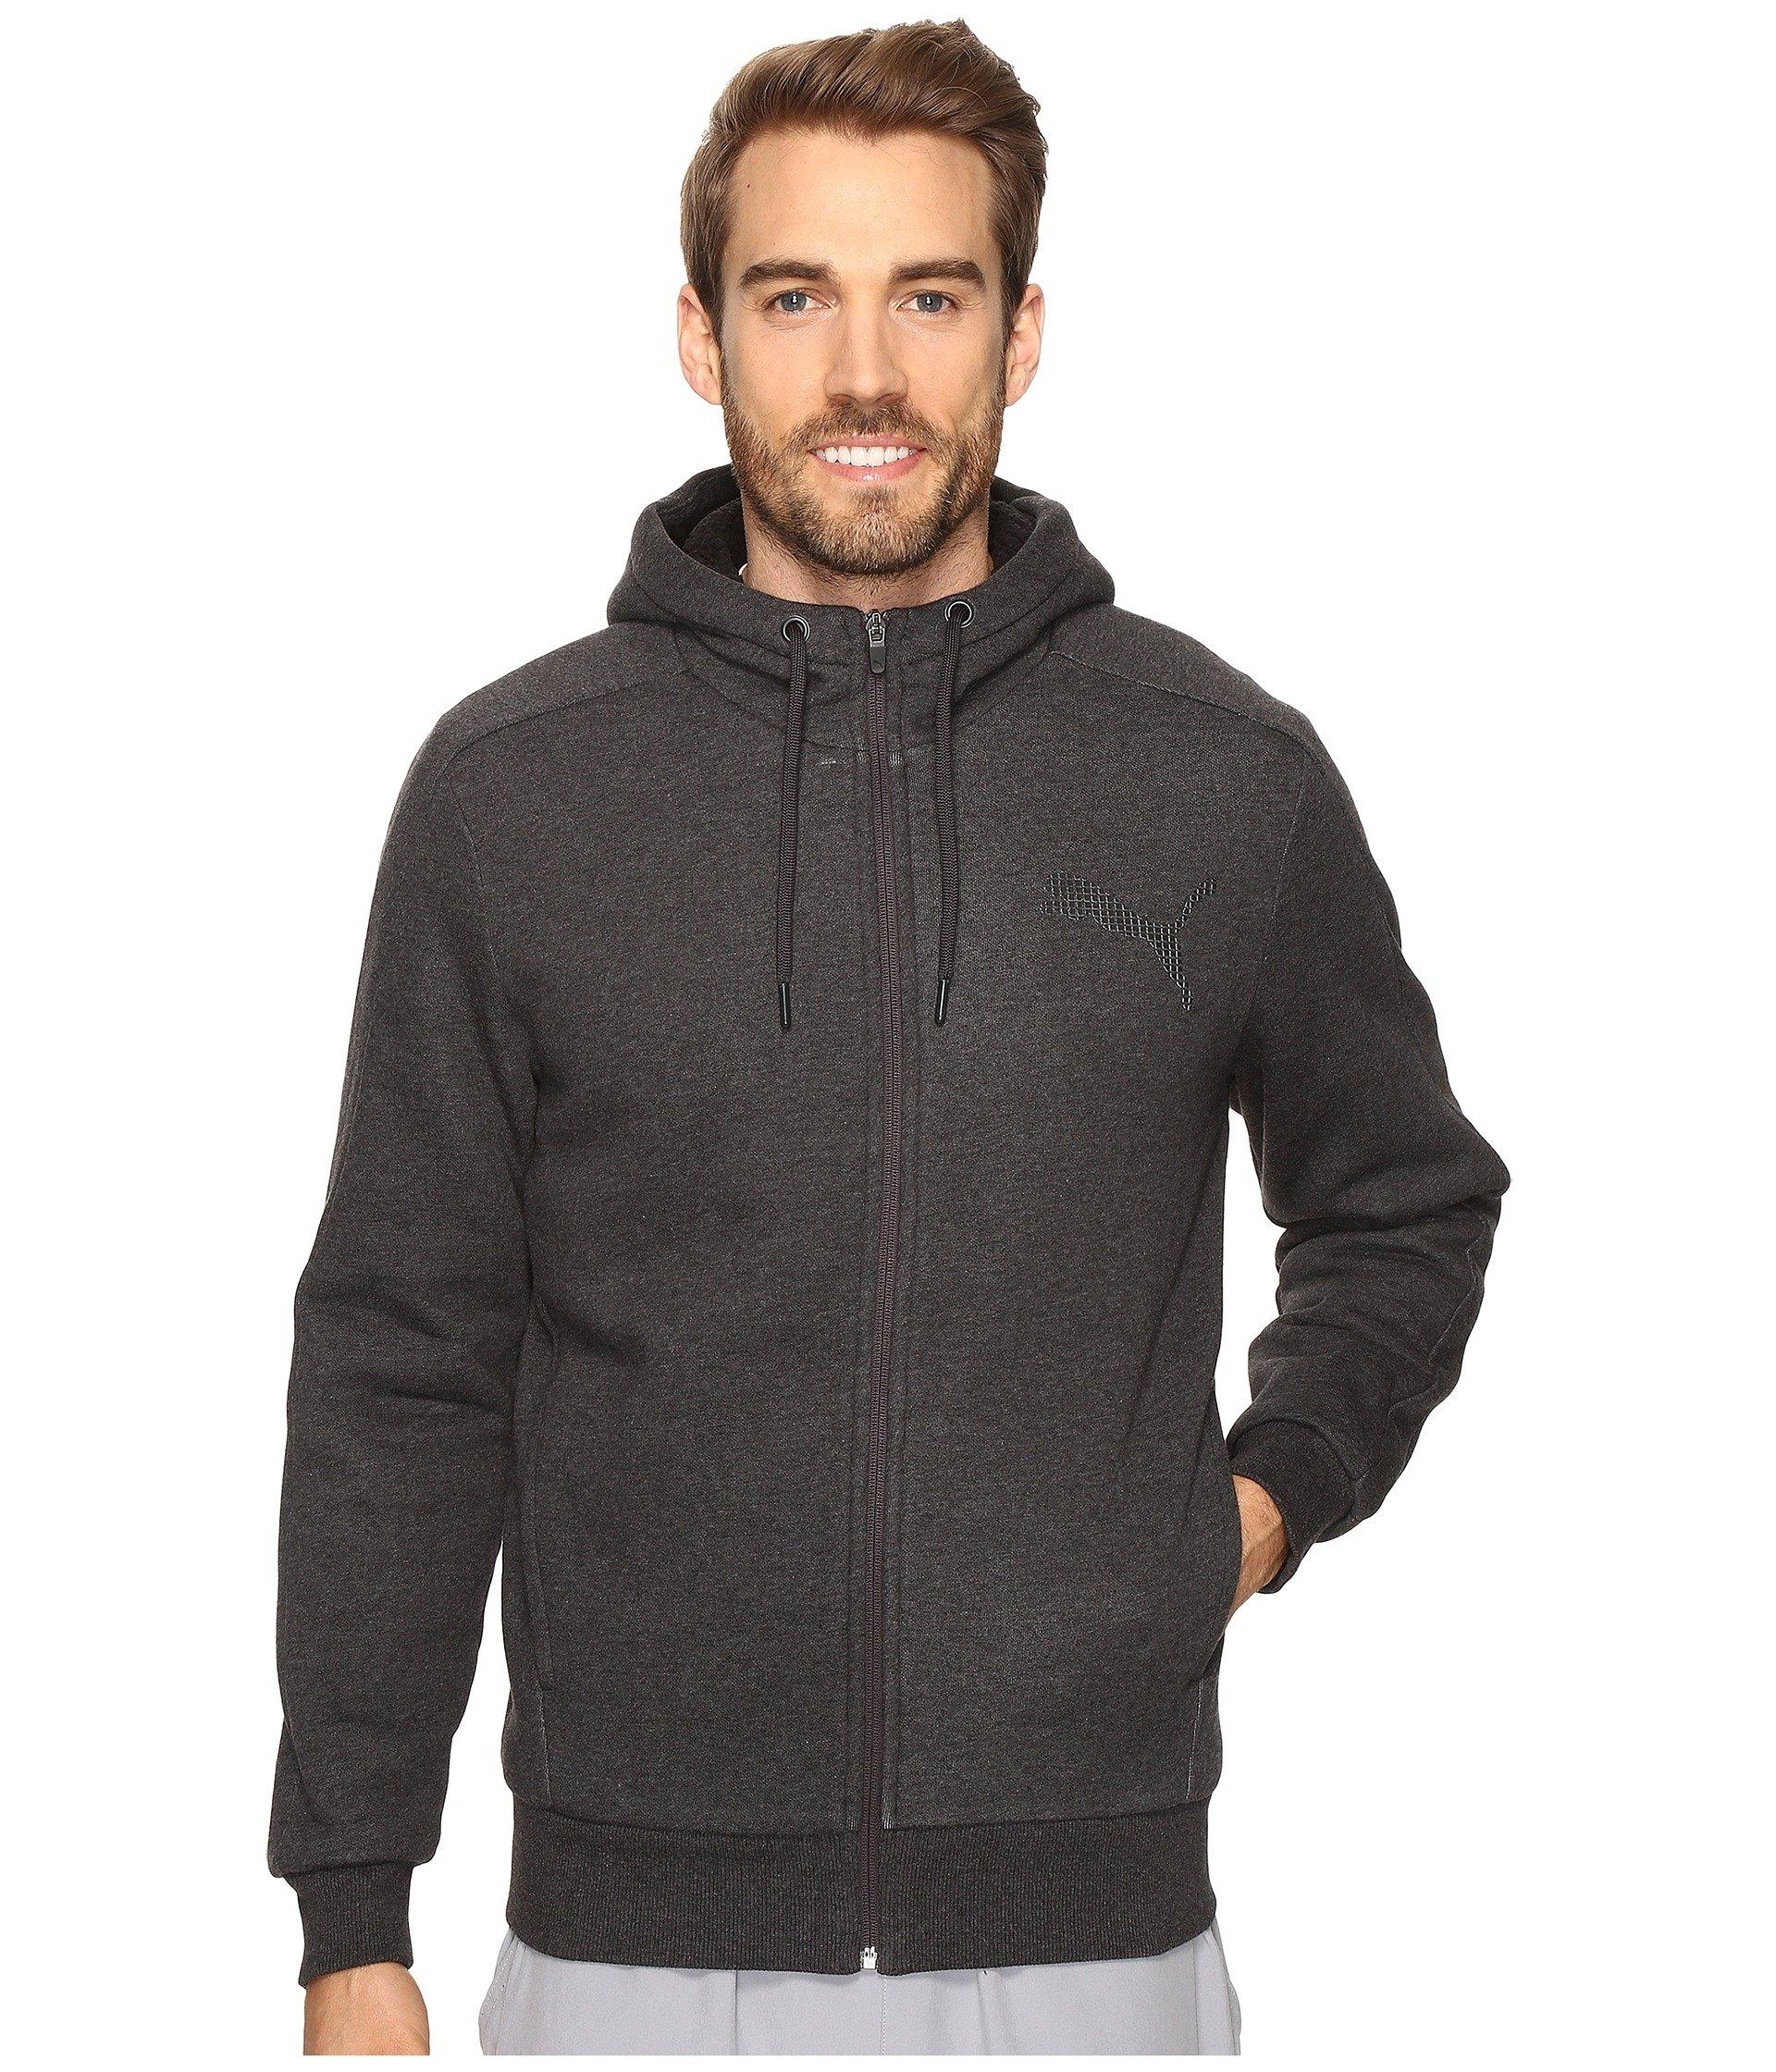 a3115055b6 P48 Core Sherpa Full Zip Hoodie, Dark Gray Heather